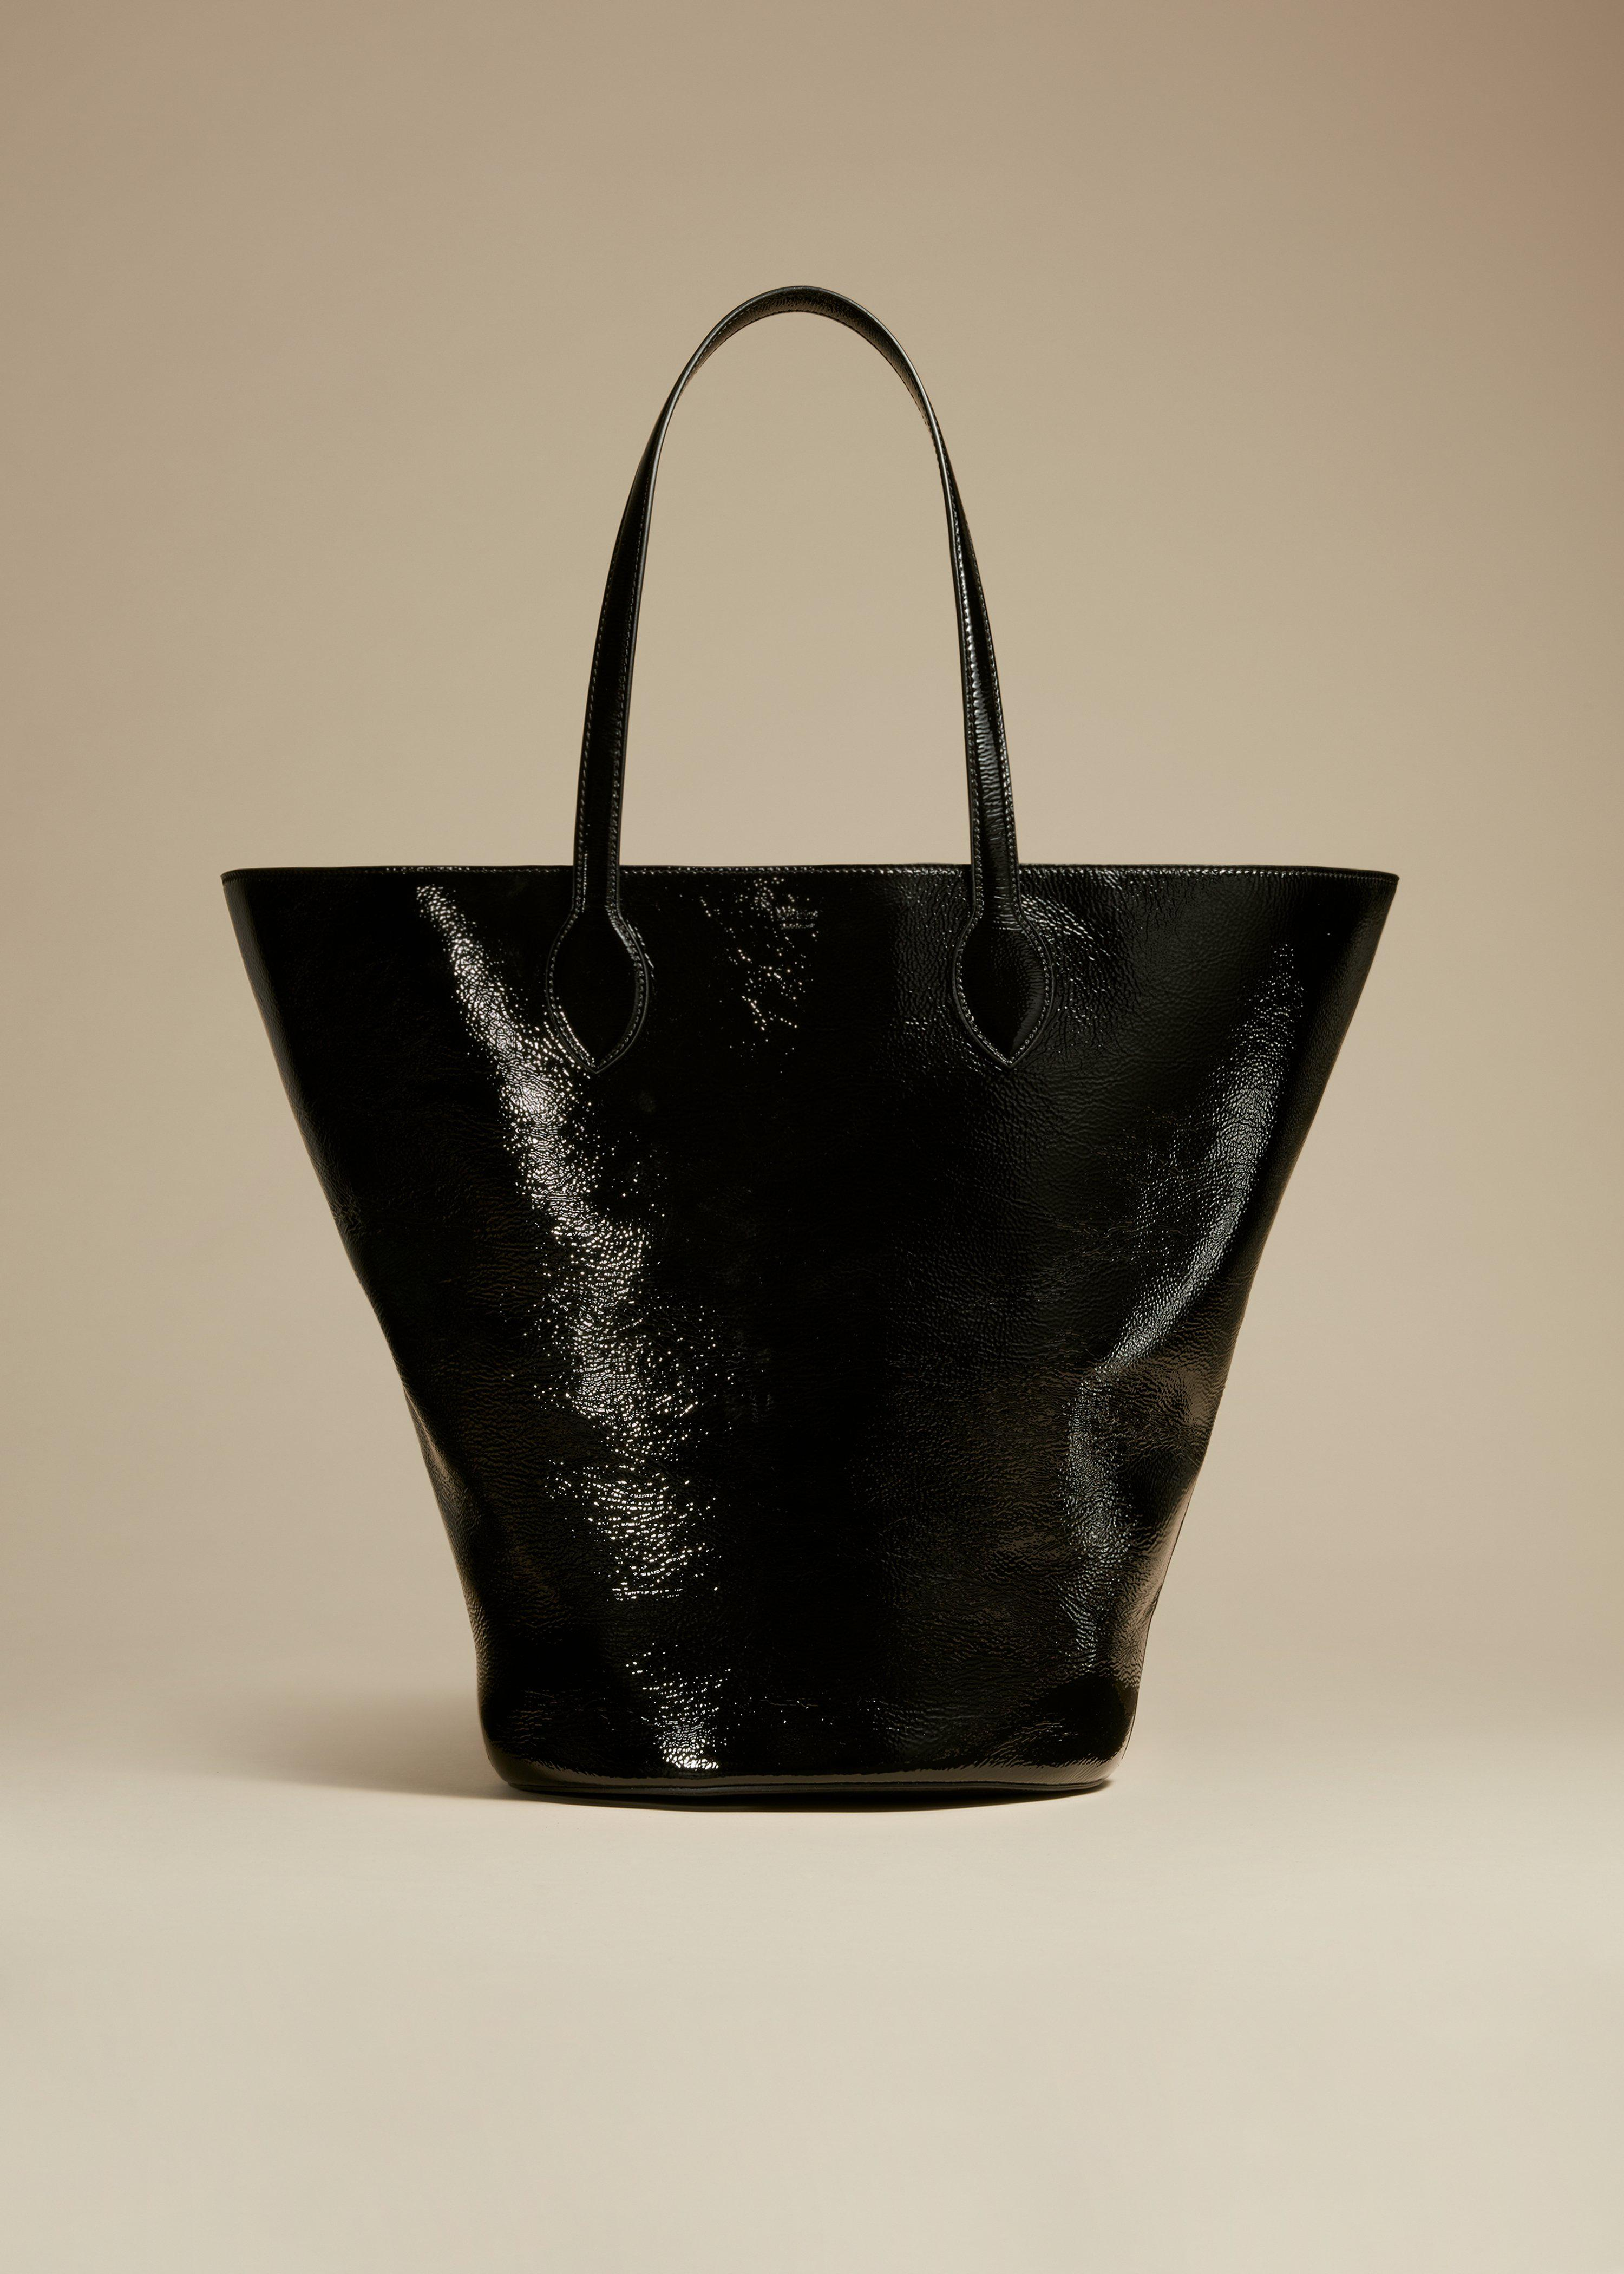 The Medium Osa Tote in Black Patent Leather